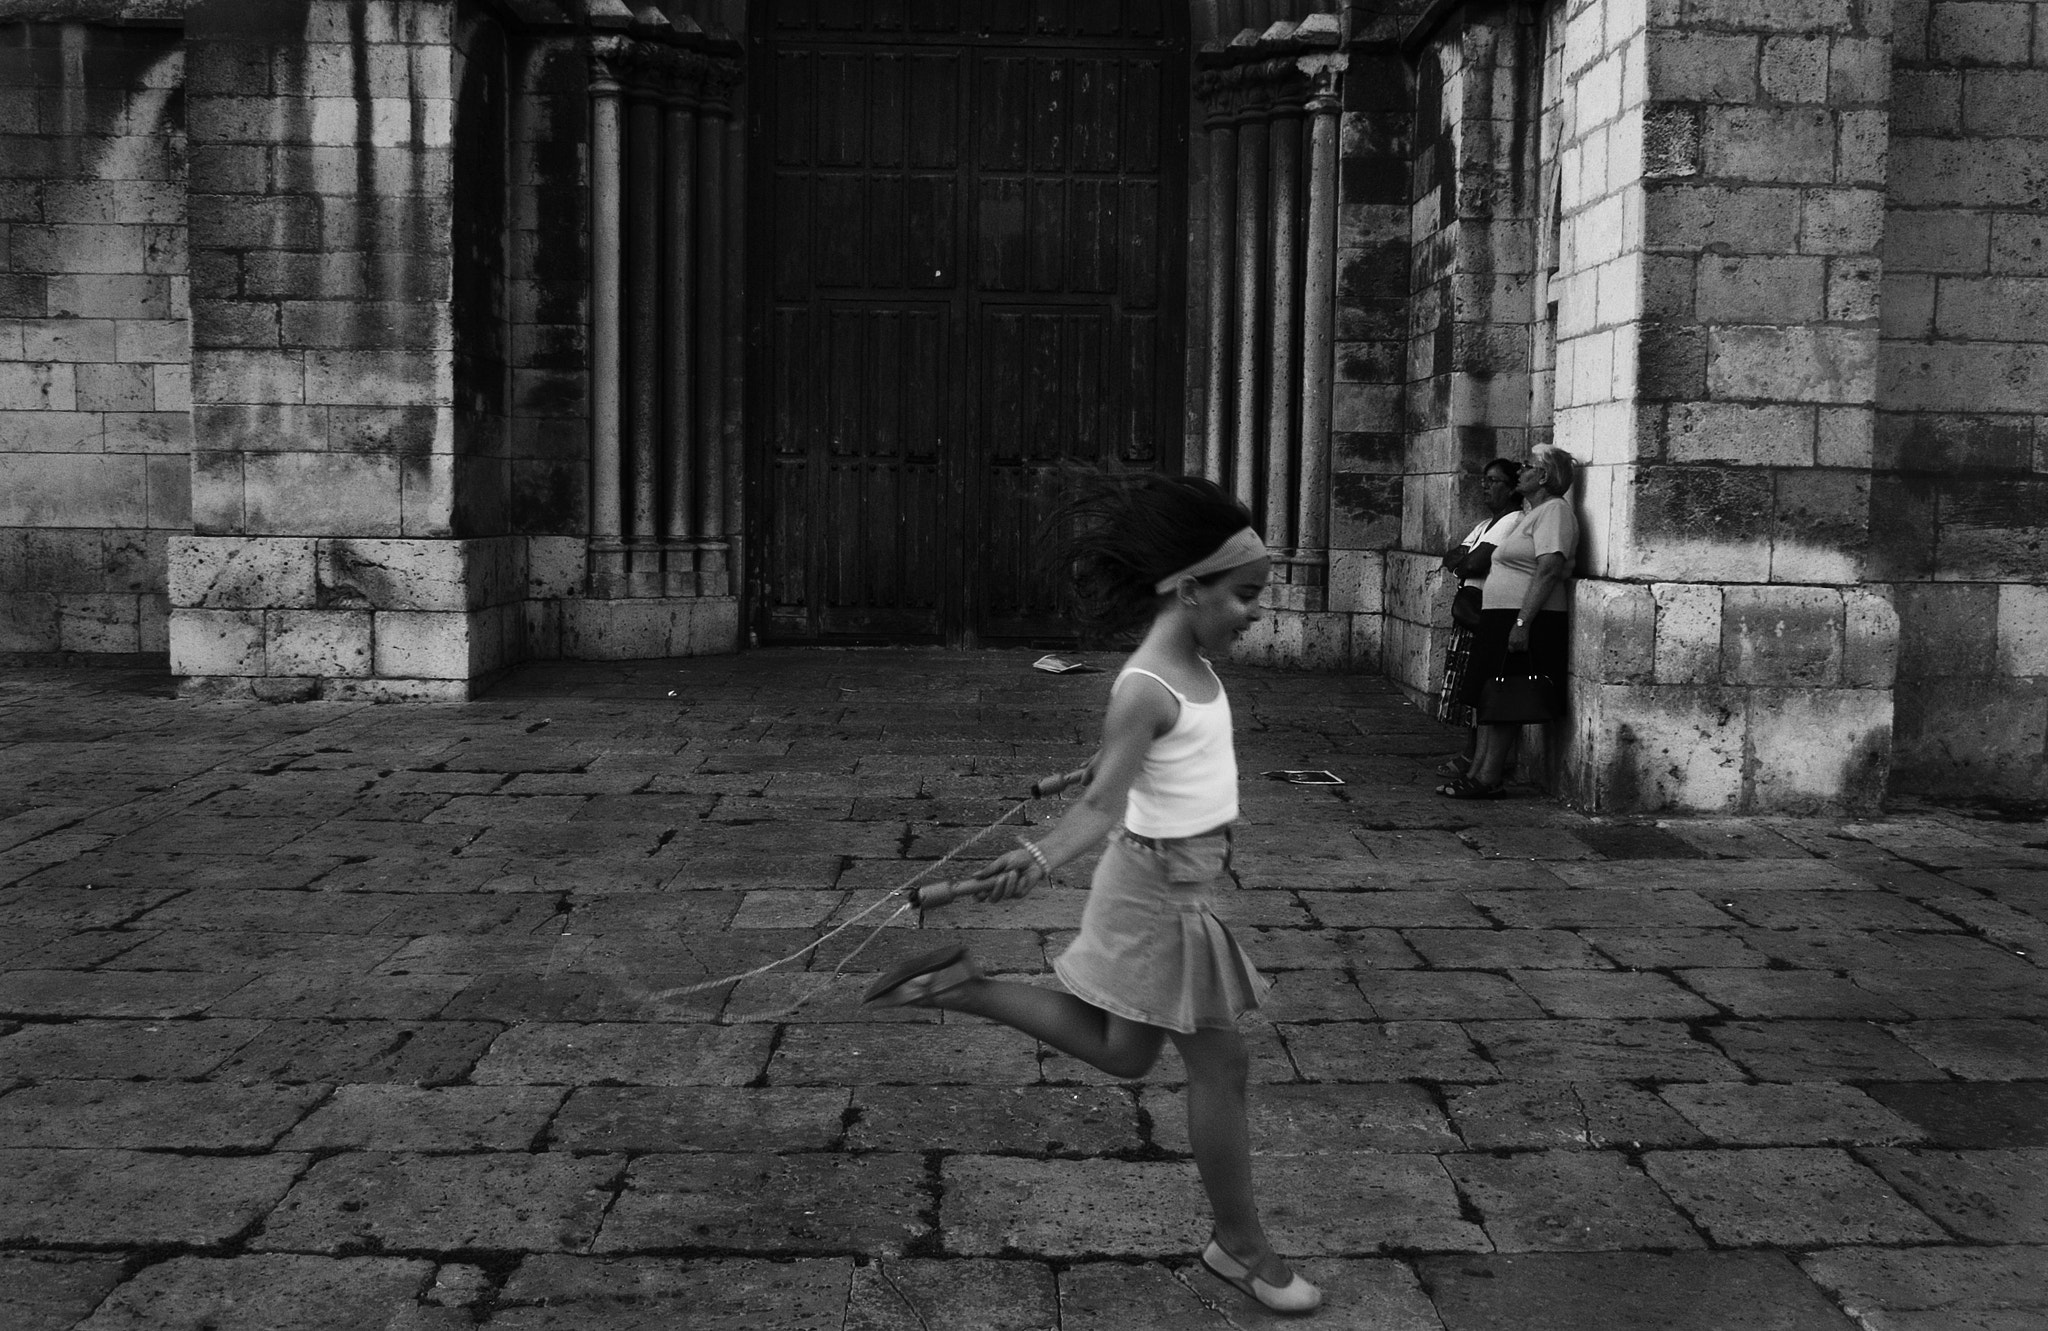 Photograph Valladolid, 2005 by Juan Buhler on 500px